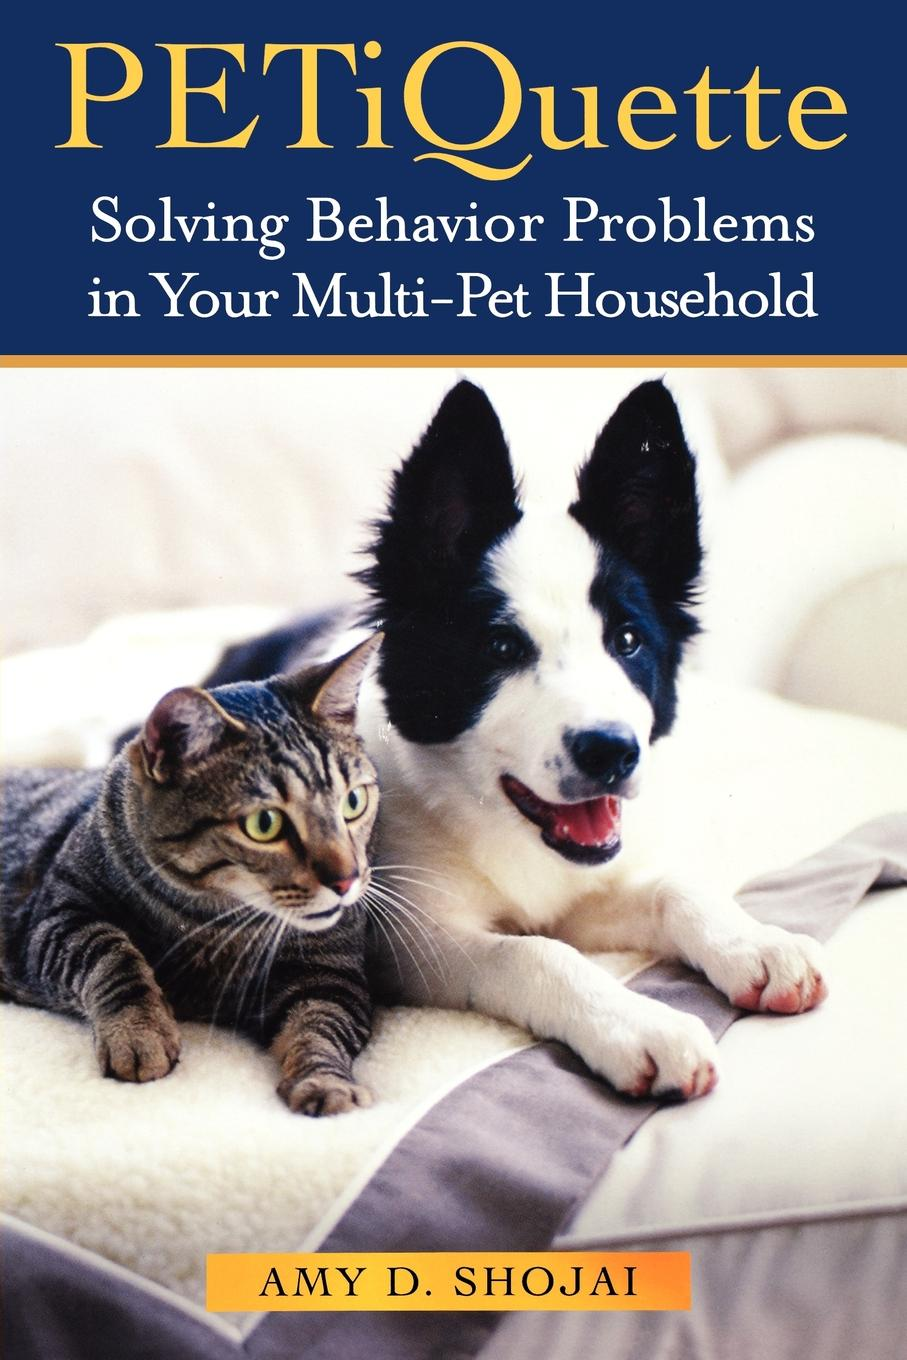 PETiquette: Solving Behavior Problems in Your Multi-Pet Household